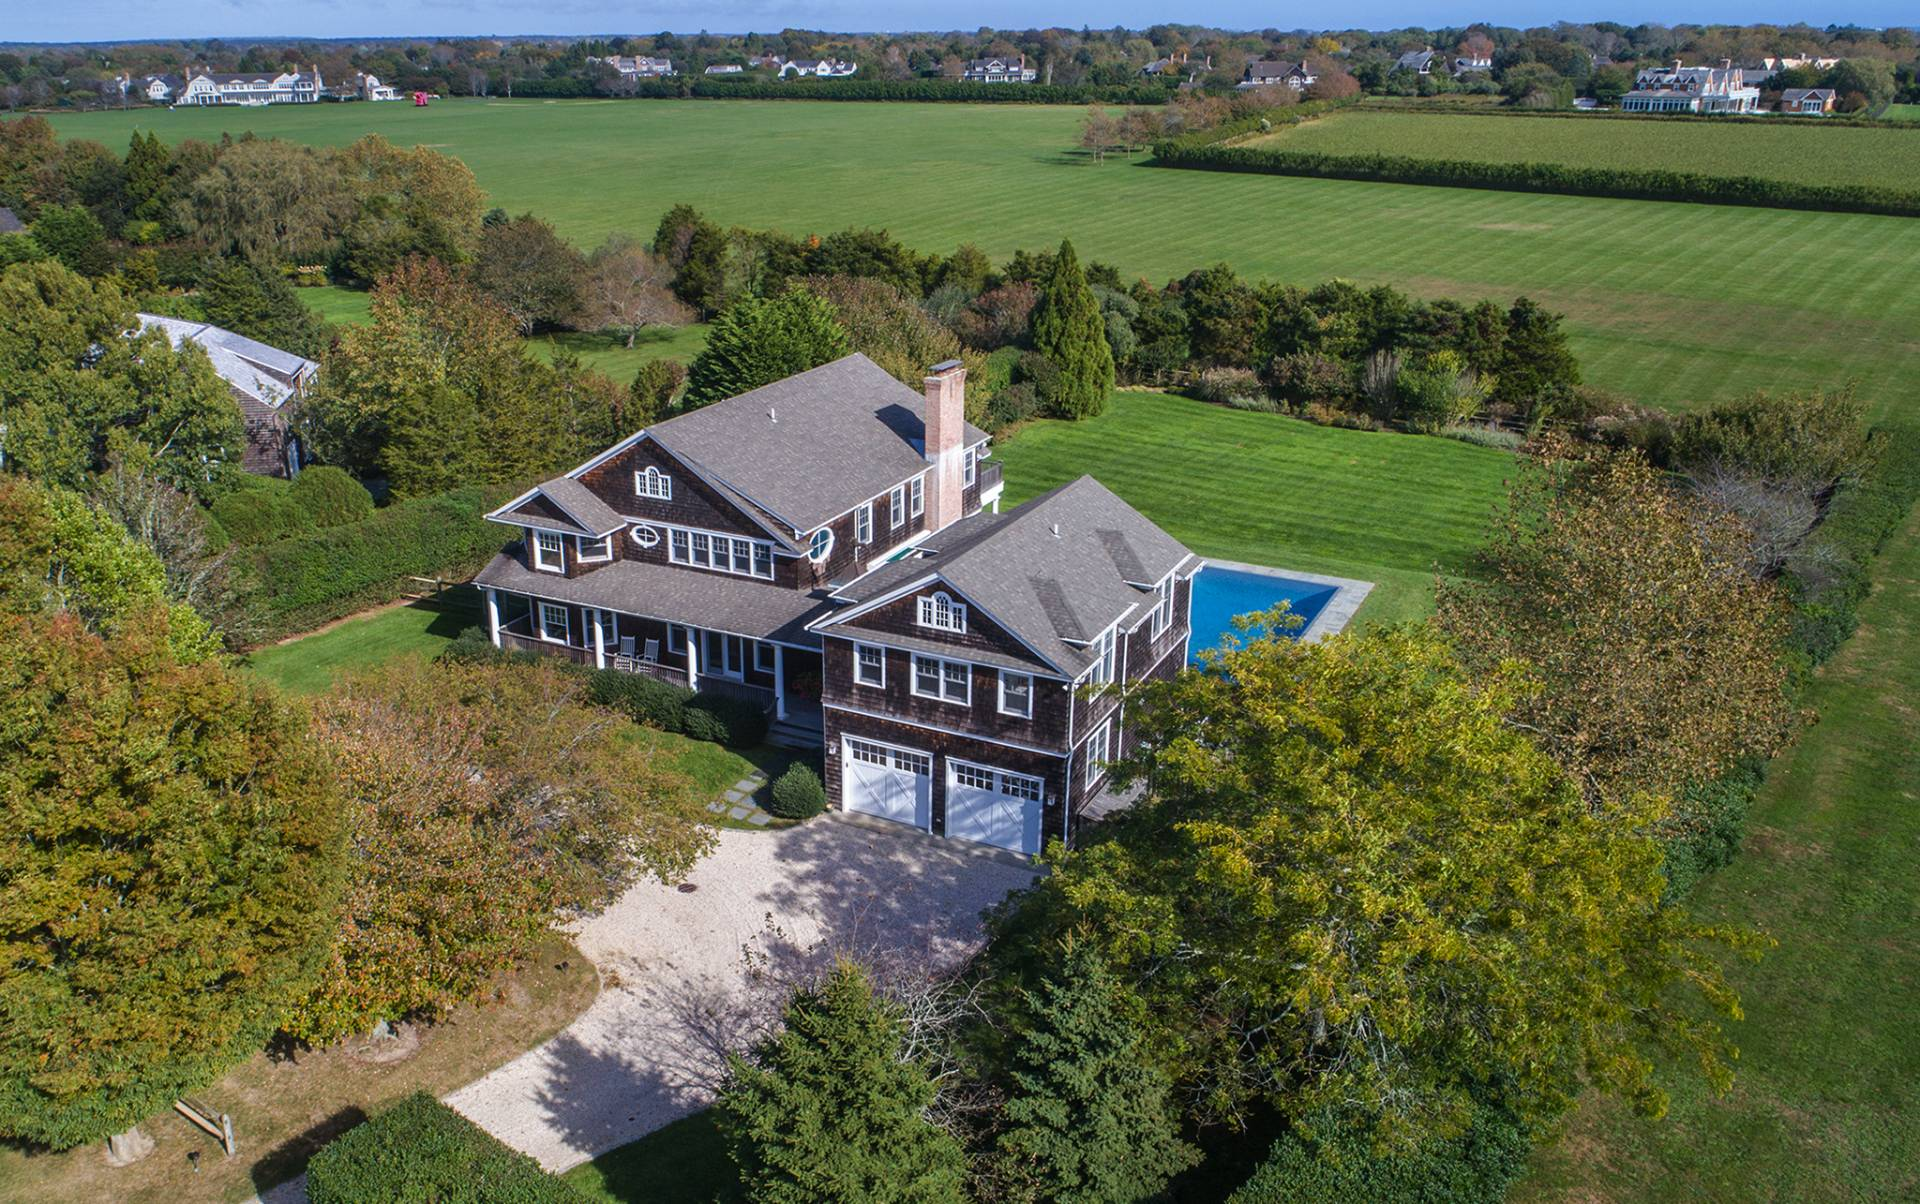 Single Family Home for Sale at Bridgehampton South With Forever Farm And Orchard Views 715 Halsey Lane, Bridgehampton, New York